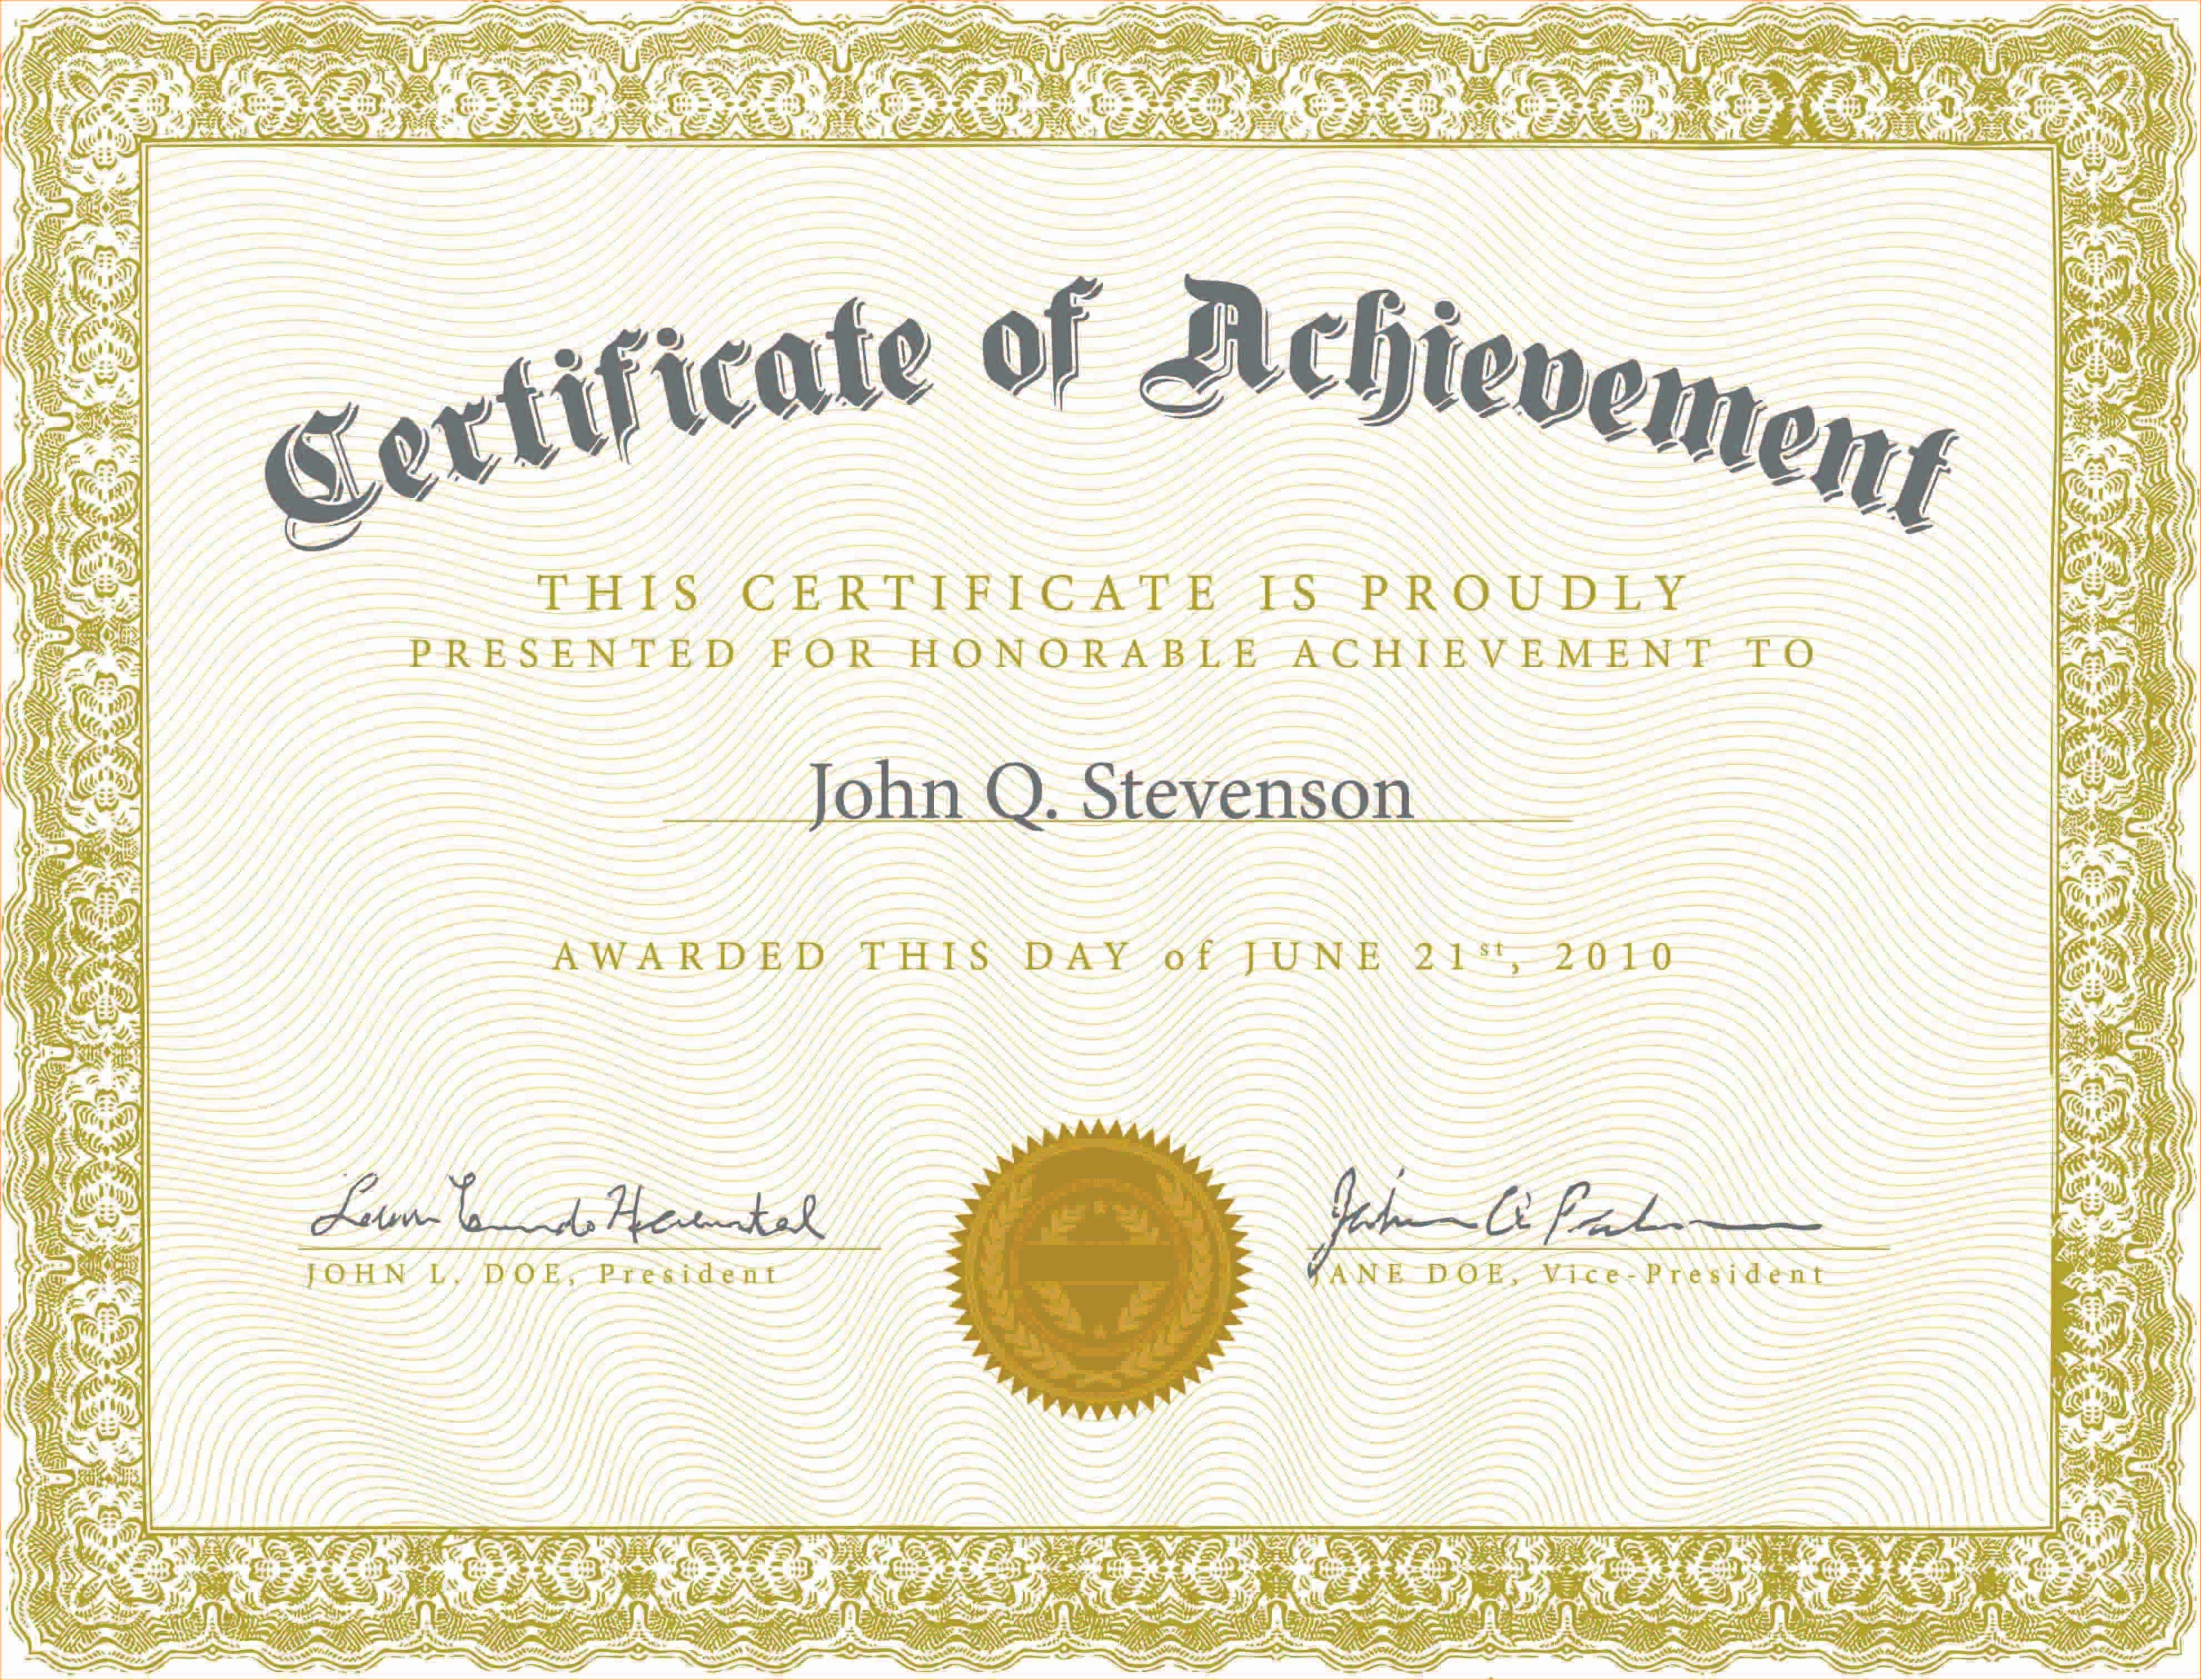 Samples Of Certificate Of Achievement Luxury Army Certificate Achievement Template Example Mughals